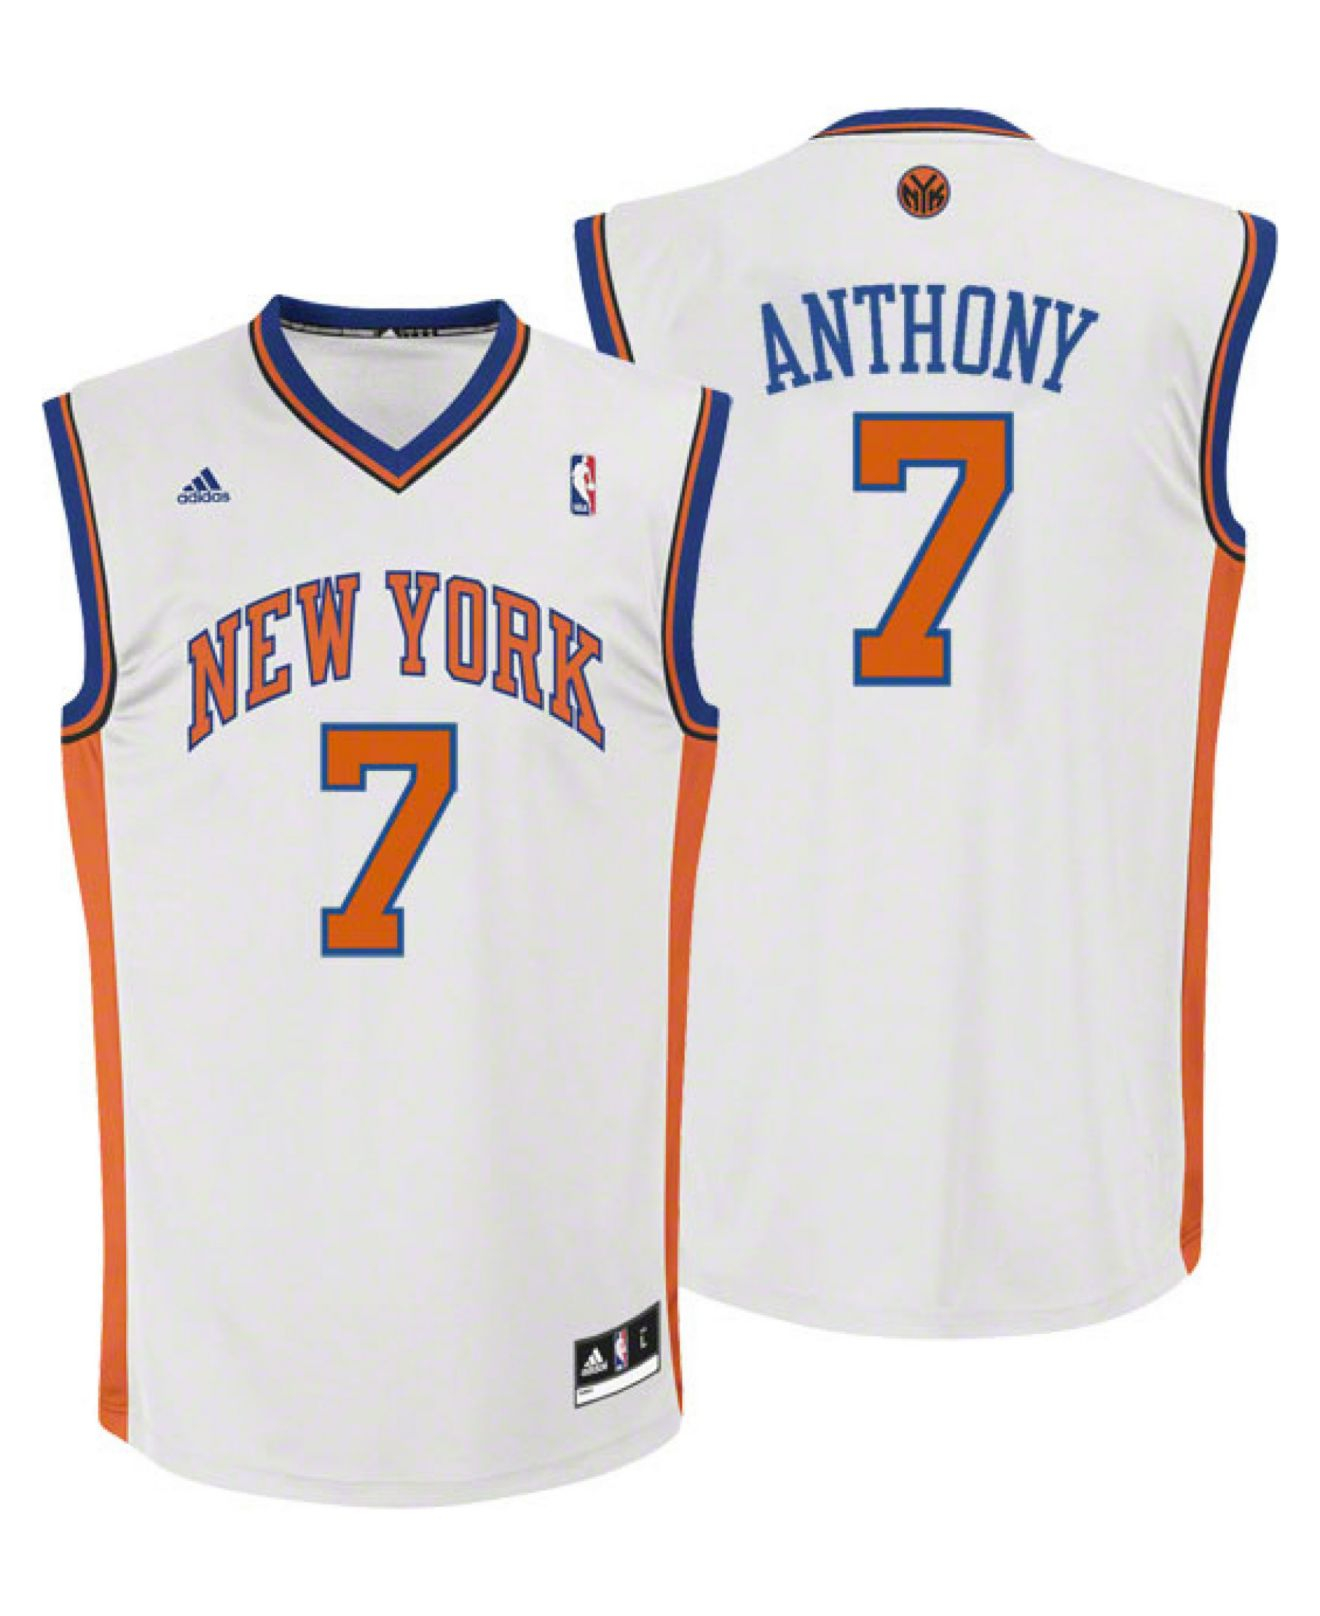 bed4ae6f4 Lyst - adidas Kids  Carmelo Anthony New York Knicks Revolution 30 ...